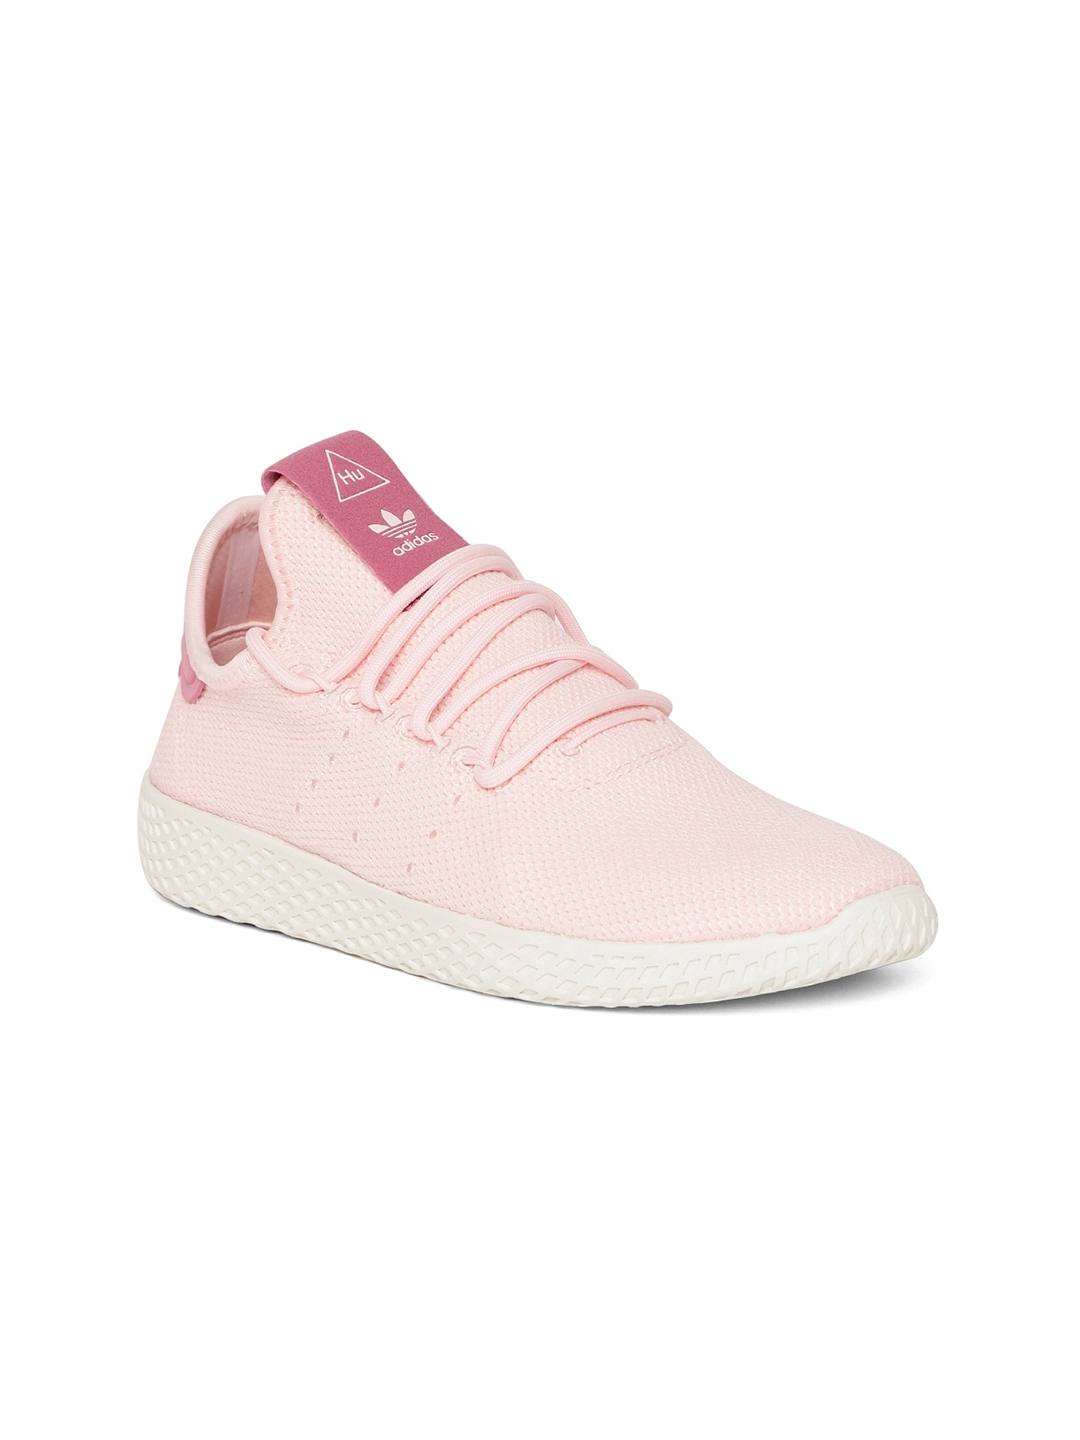 adidas pw tennis shoes women